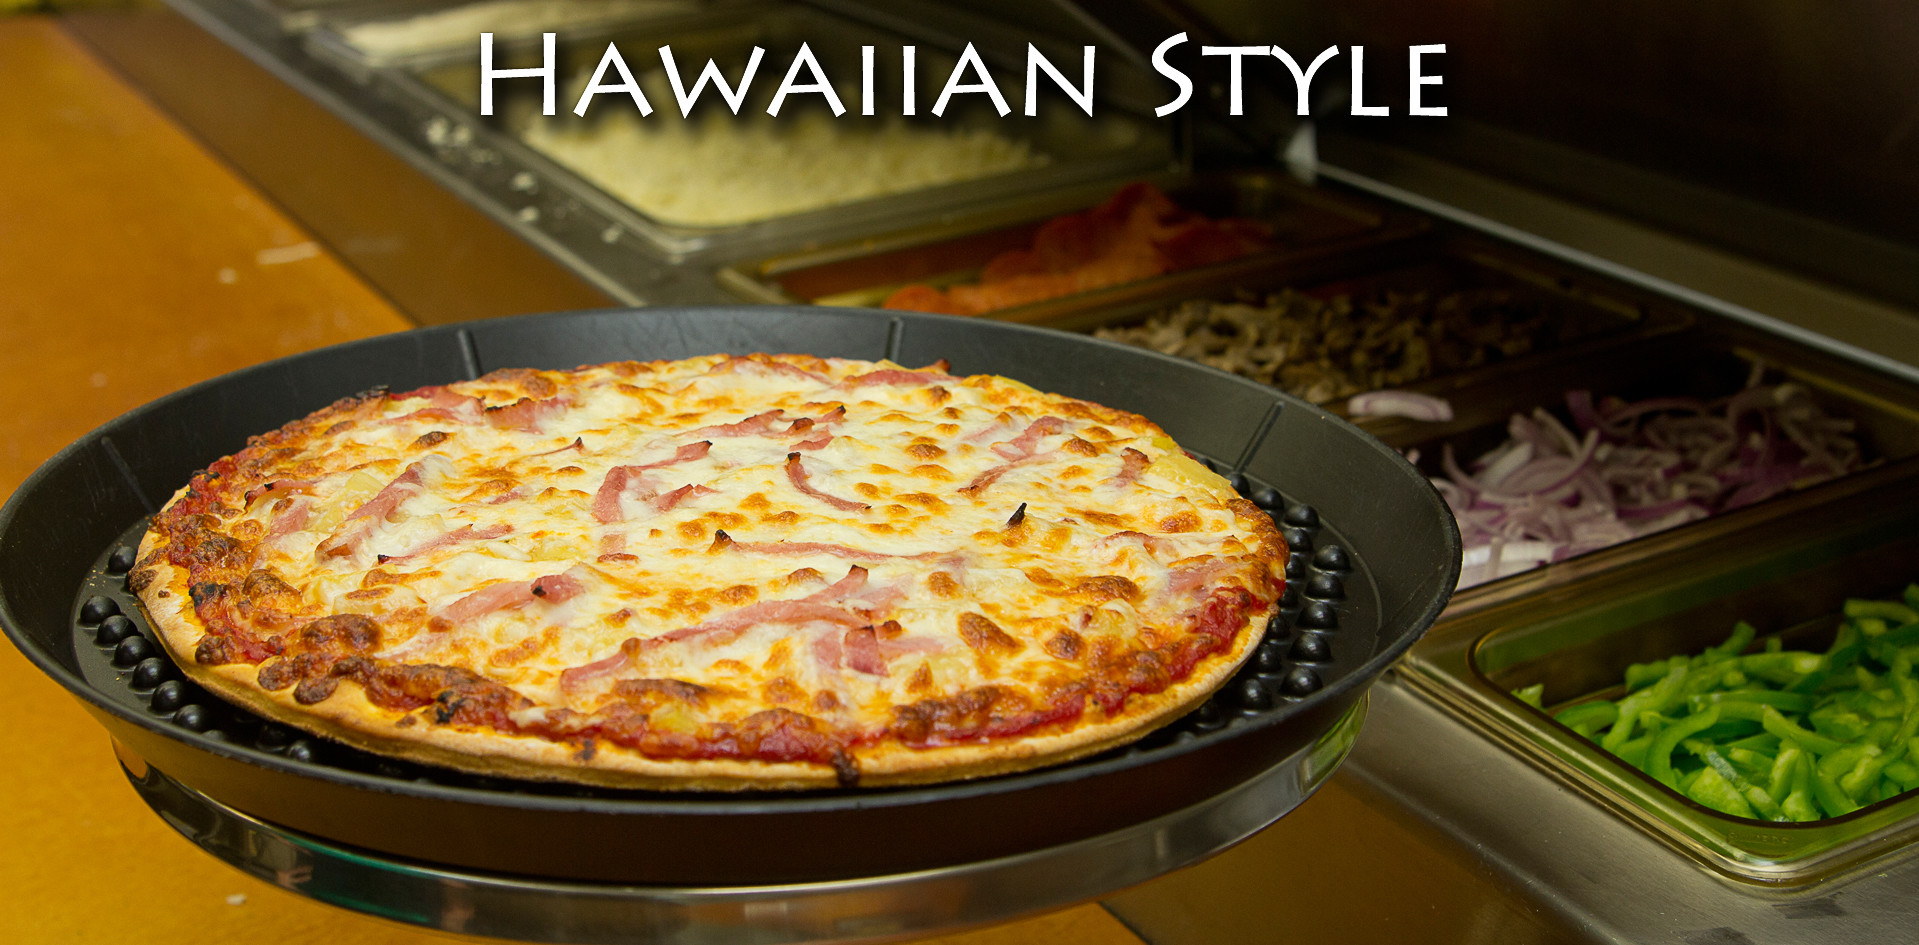 Hawaiian Style Thin Crust Pizza